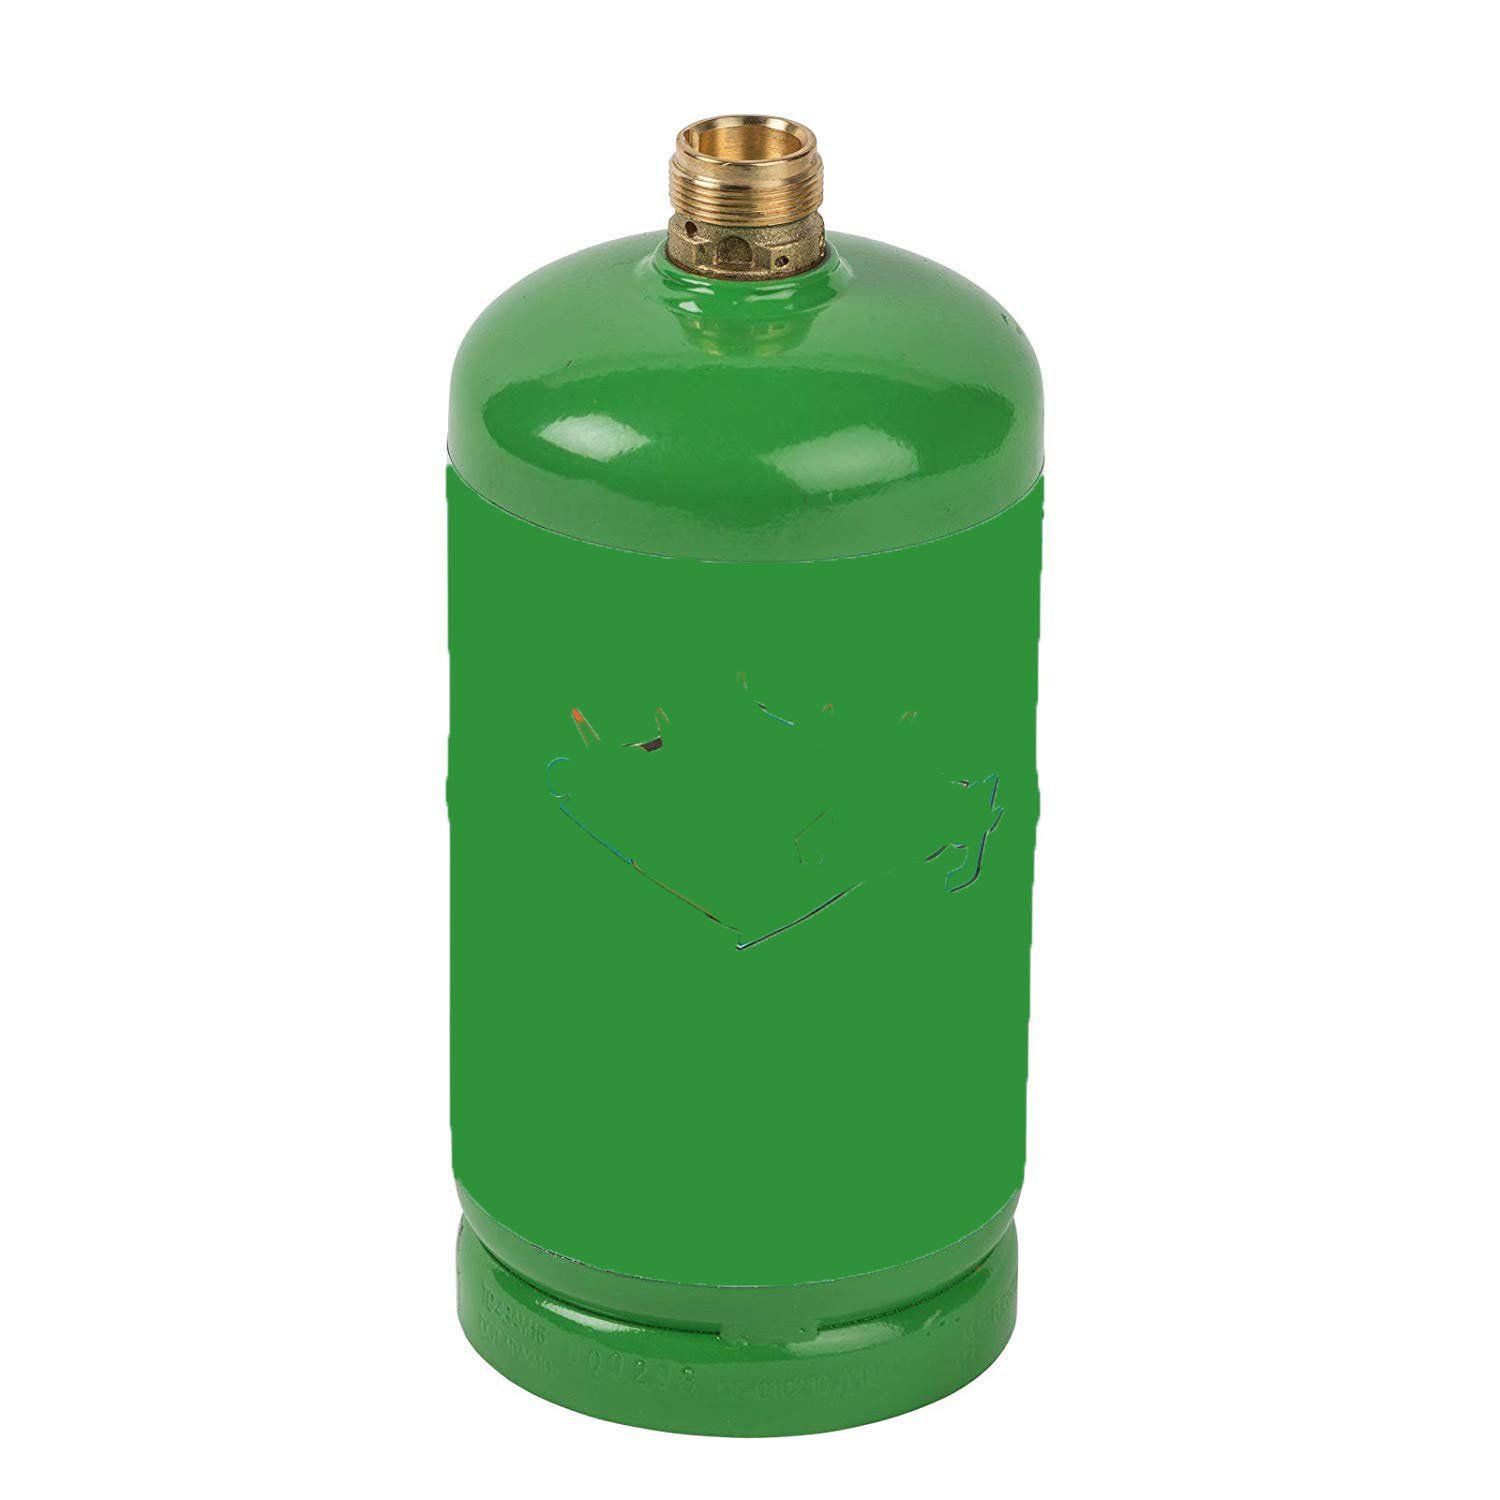 Refillable Propane Canister